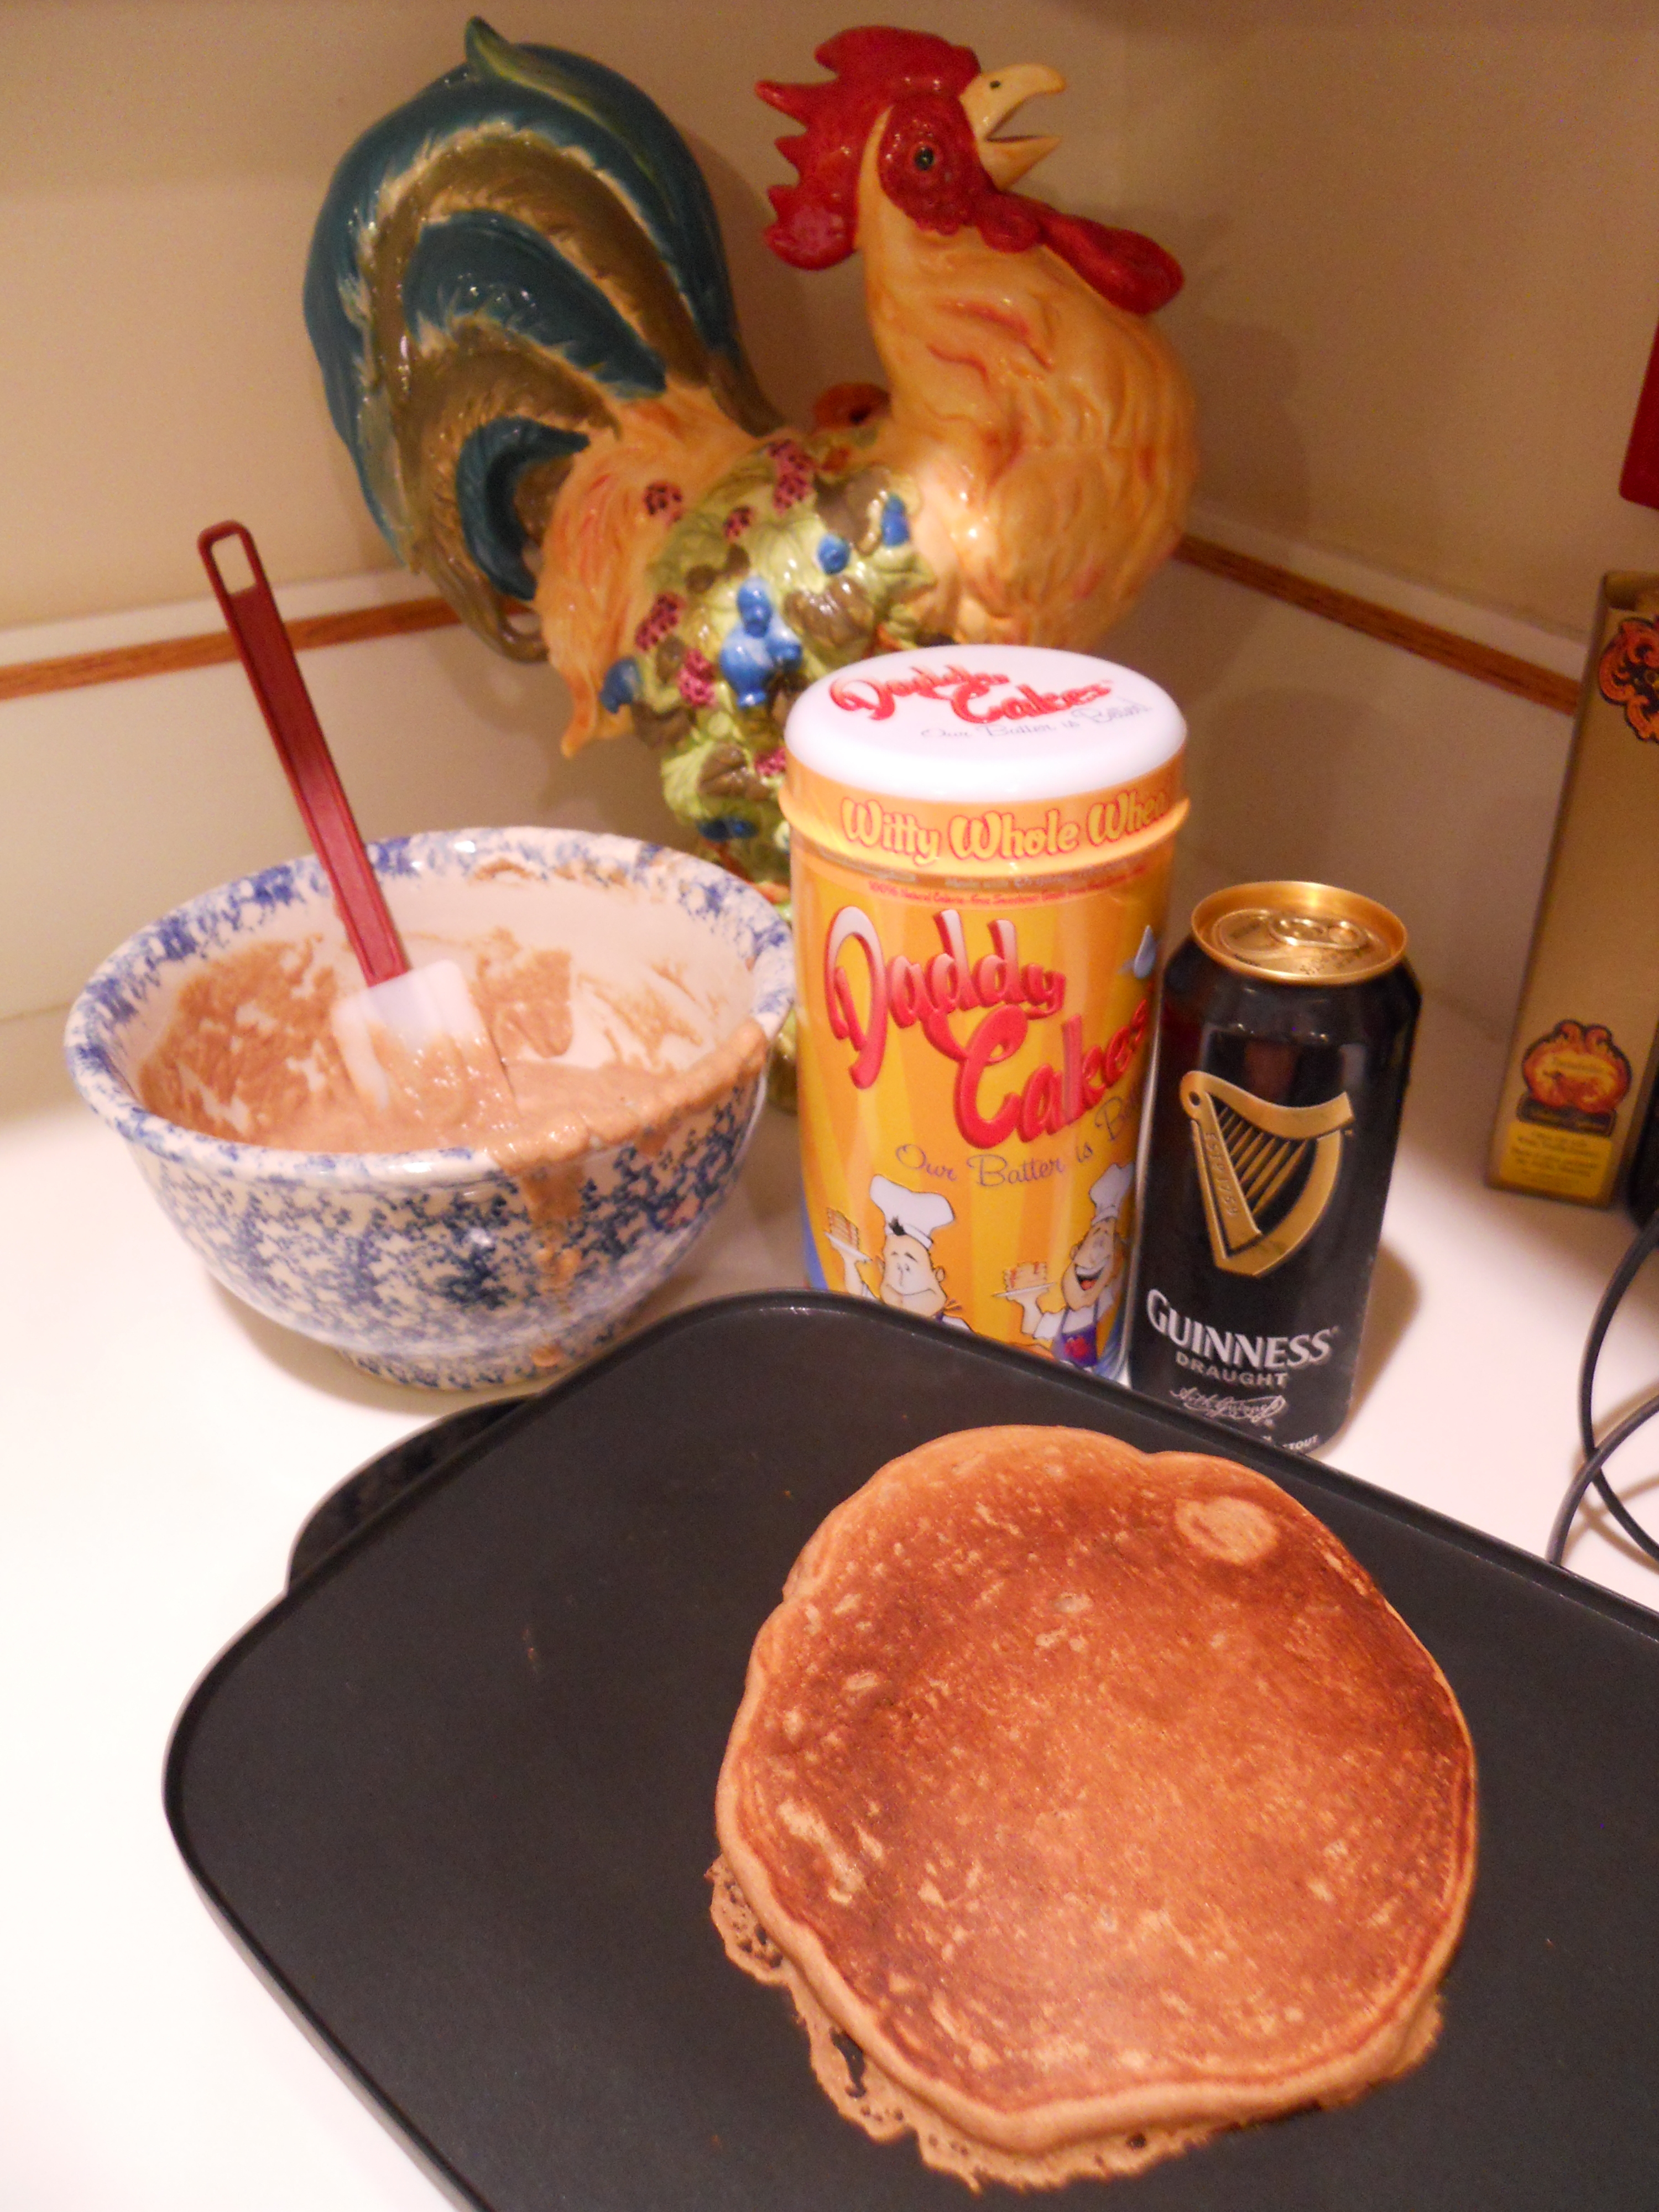 Daddy Cakes Guinness Beer Pancake